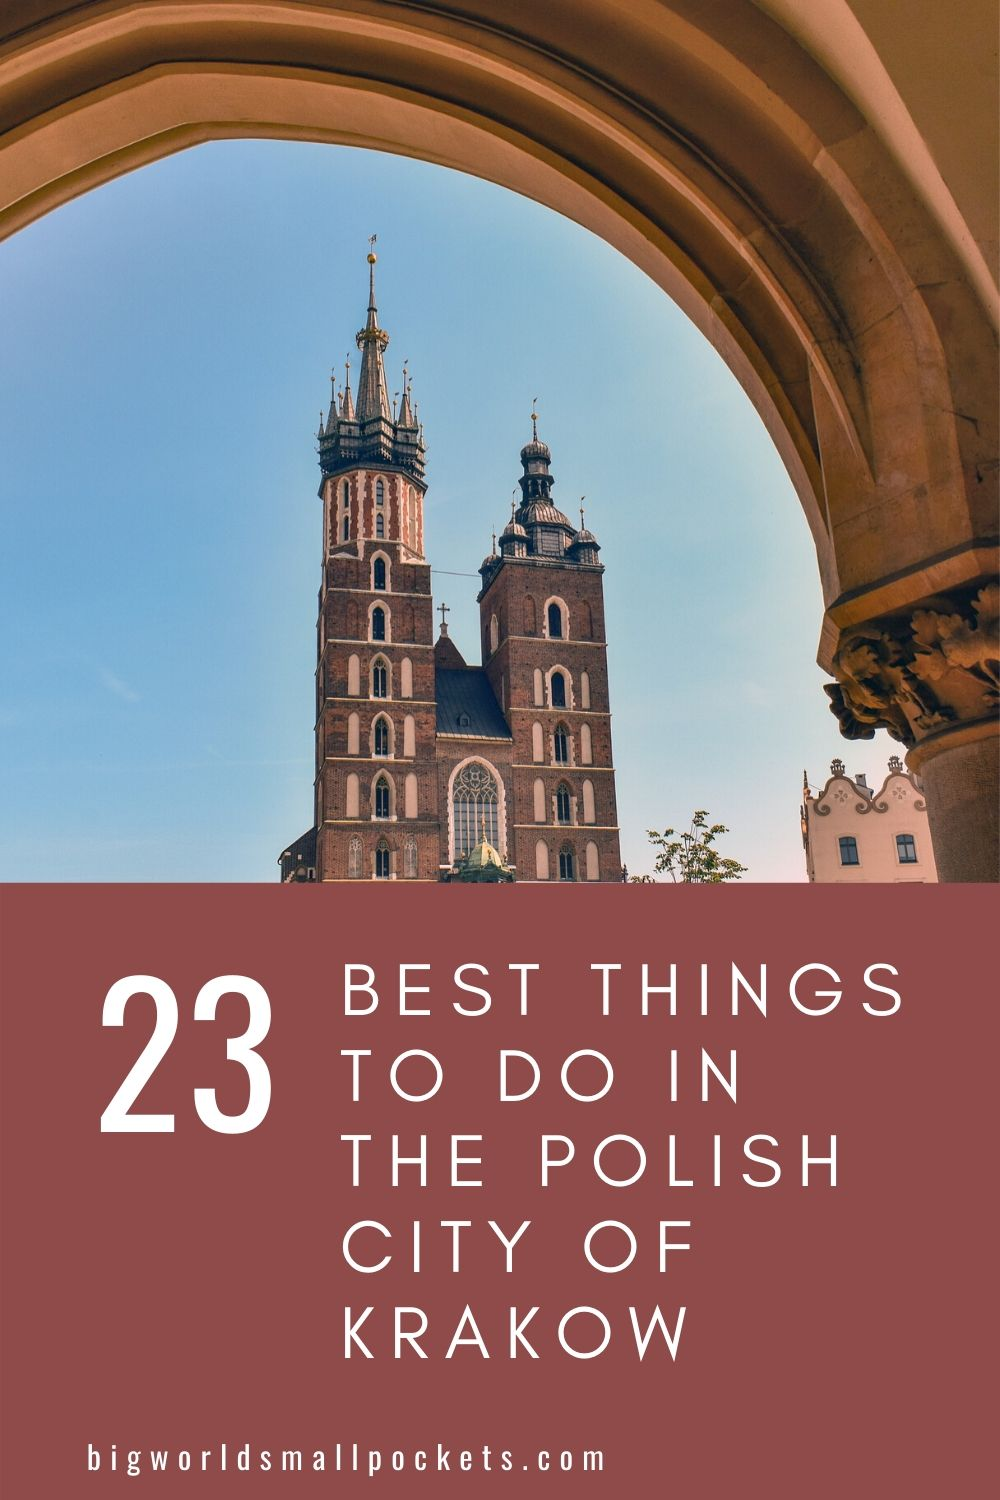 Top 23 Things to Do in Krakow Poland, Including 8 That Are Free!